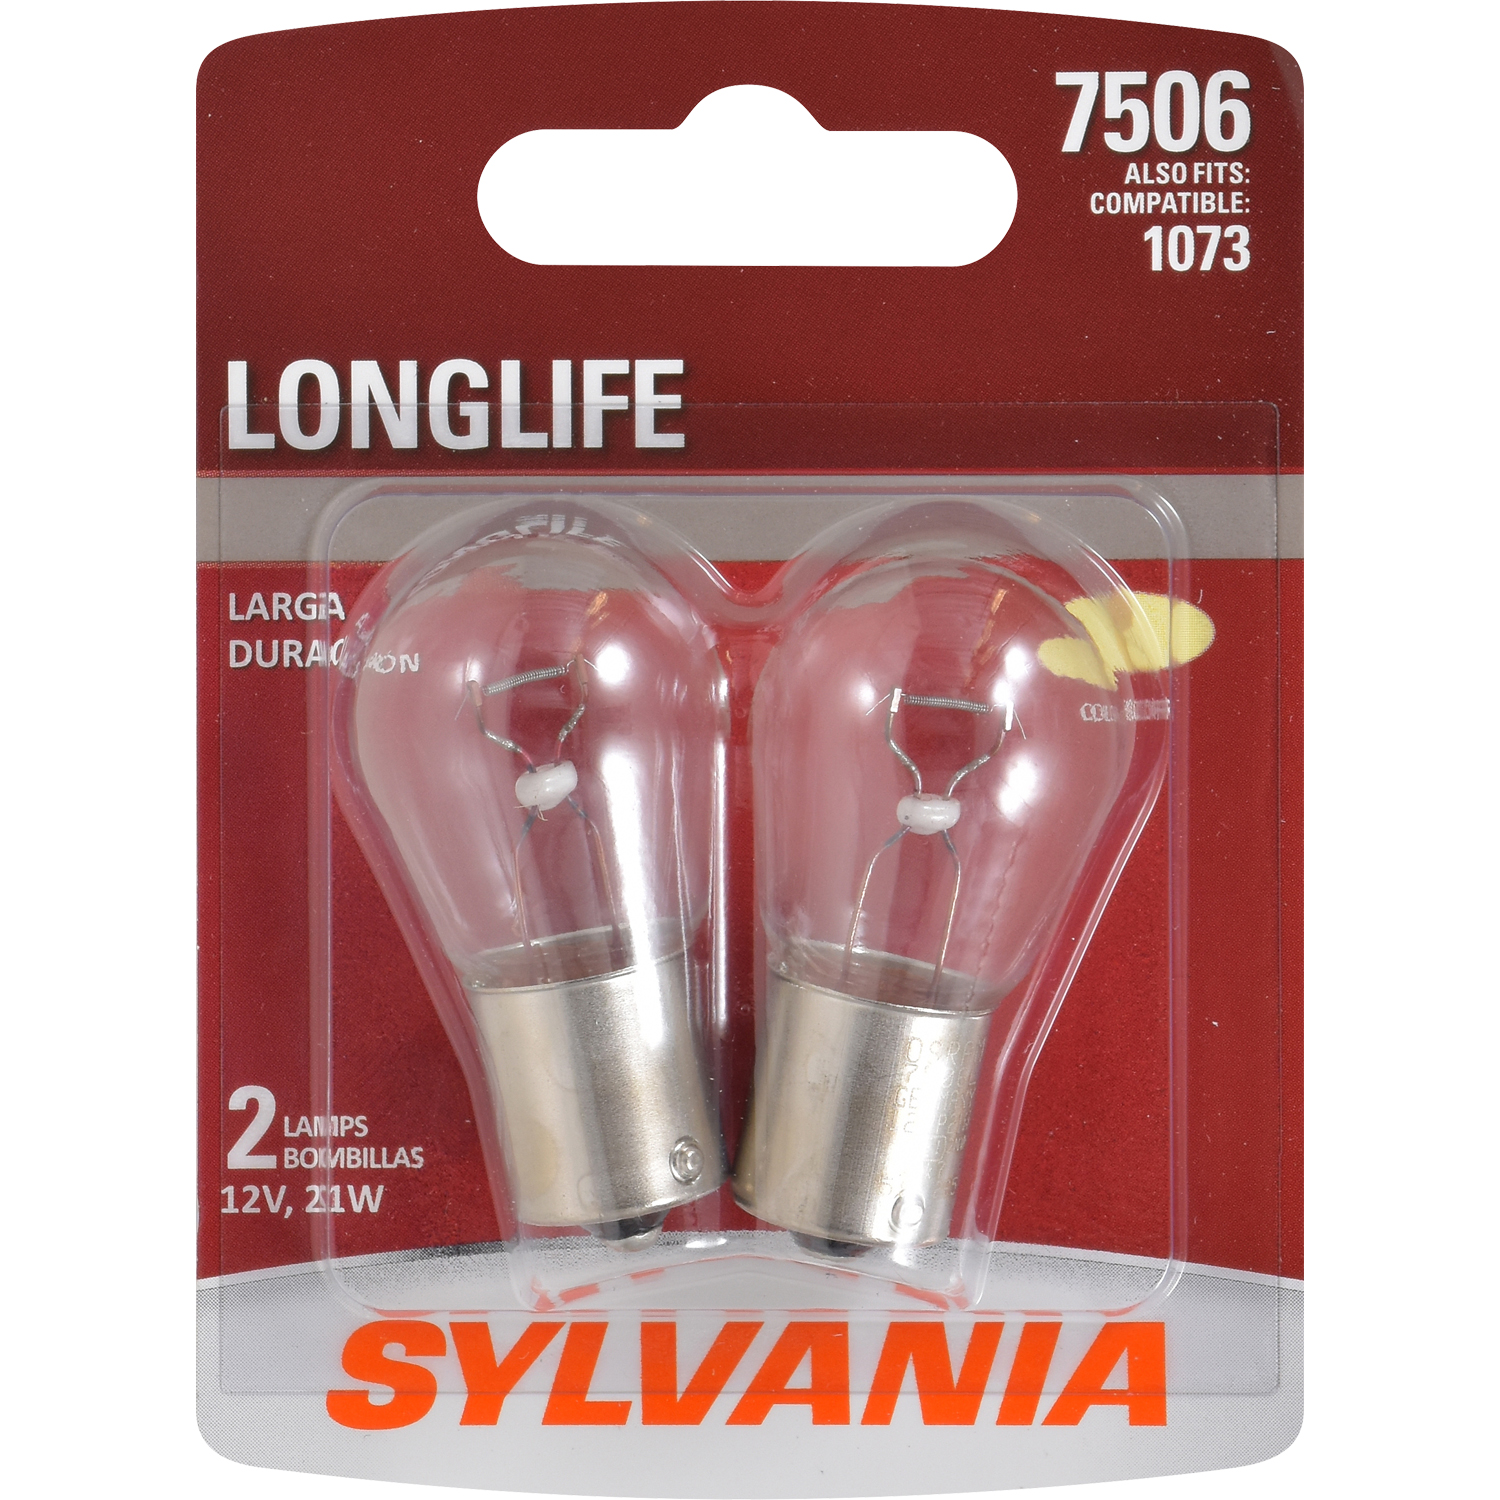 SYLVANIA 7506 Long Life Mini Bulb, Pack of 2